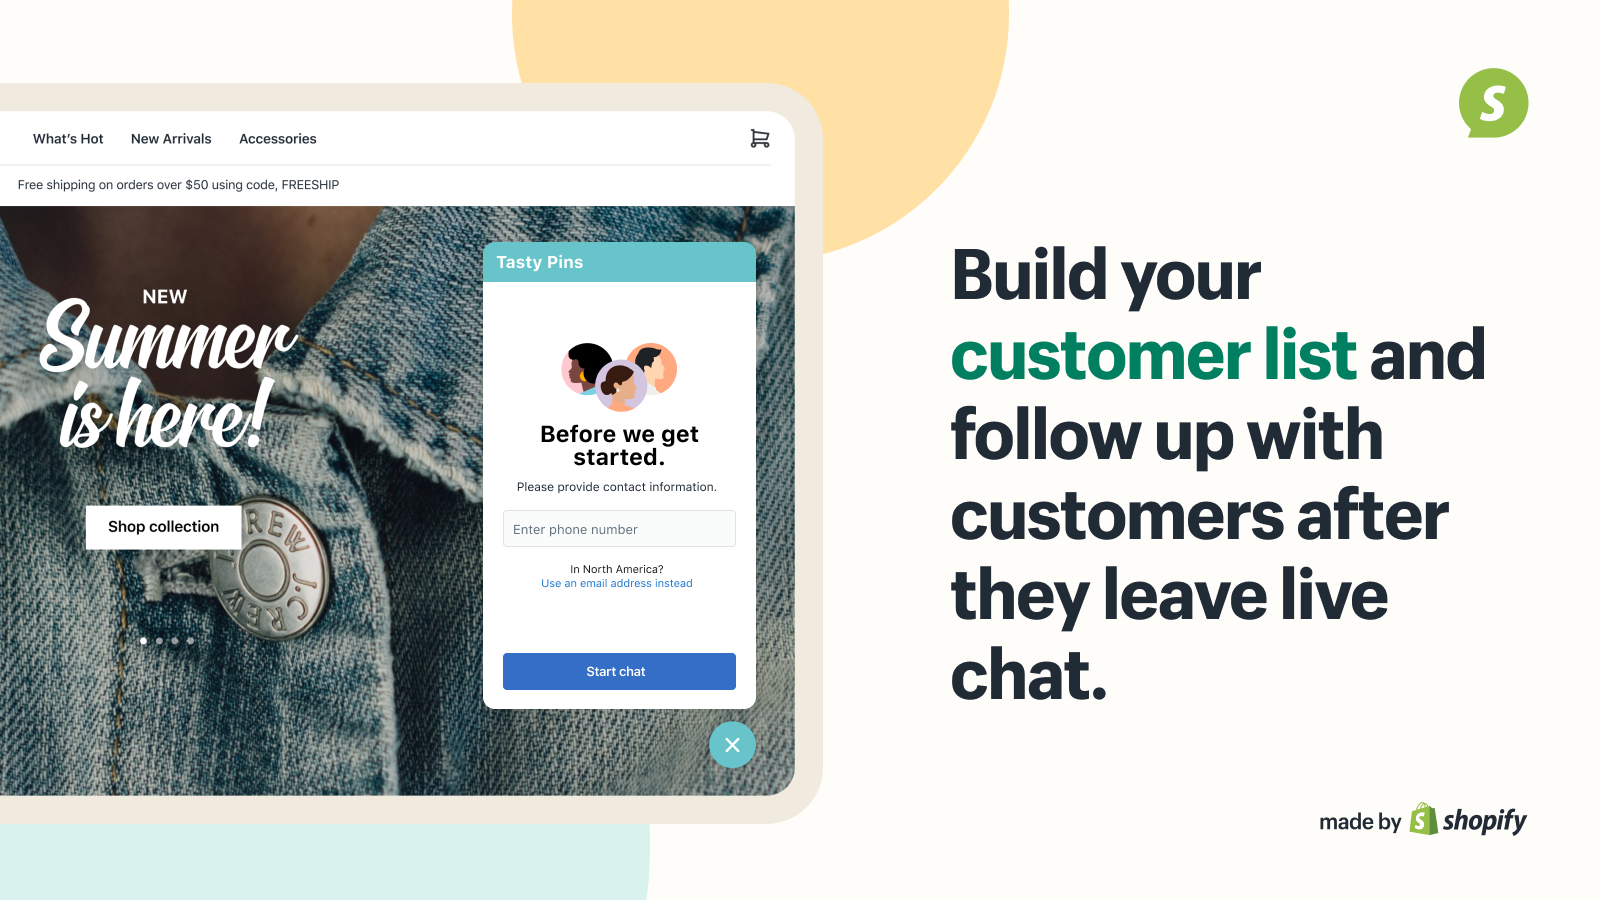 Build your customer list and follow up with customers